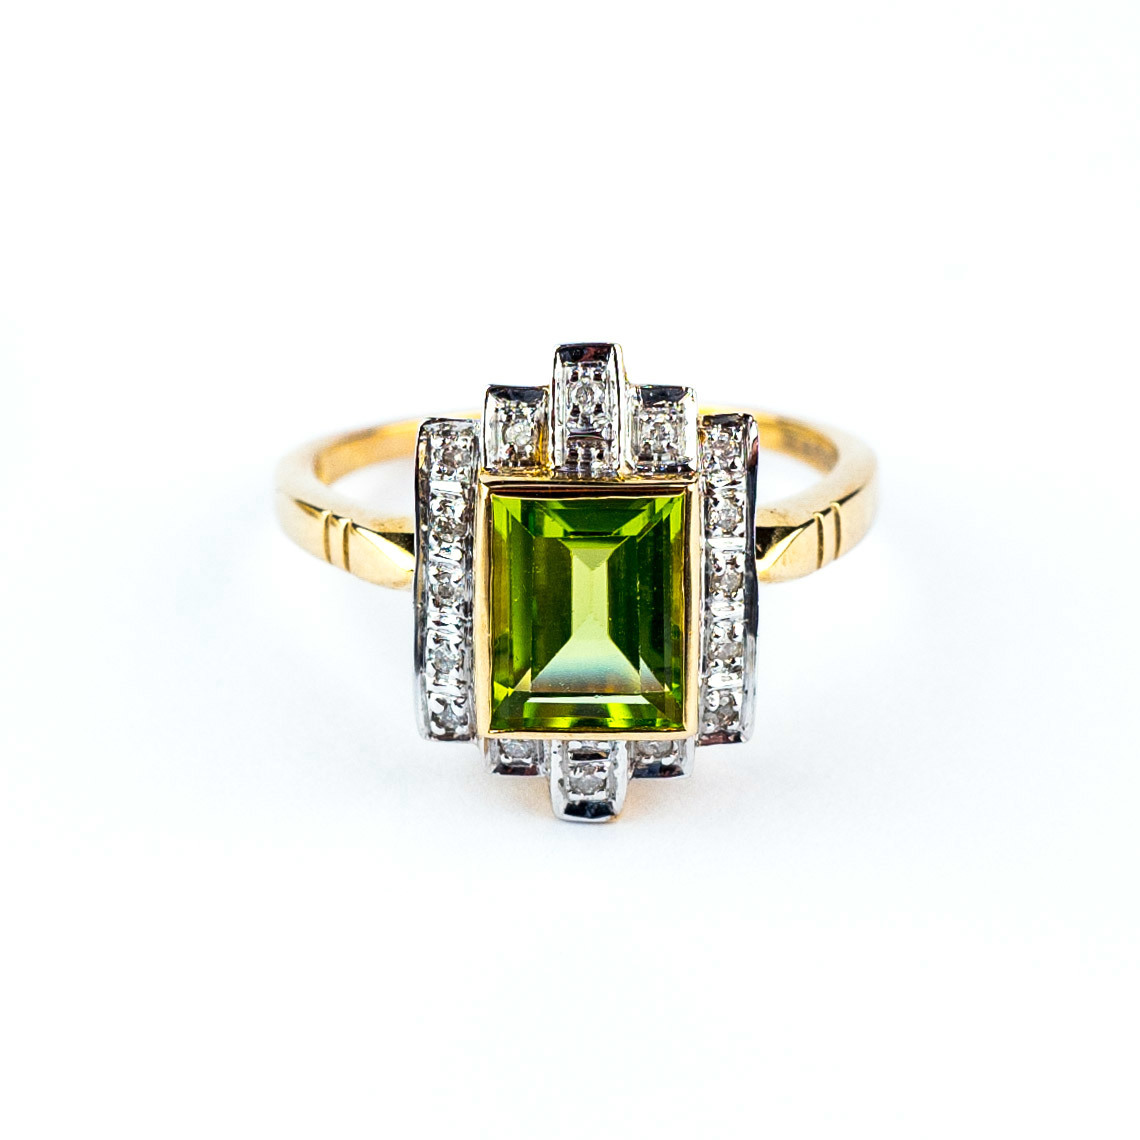 engagement il set in cut diamond rings peridot sets wedding fullxfull round yellow gold cltk bridal ring solid band and